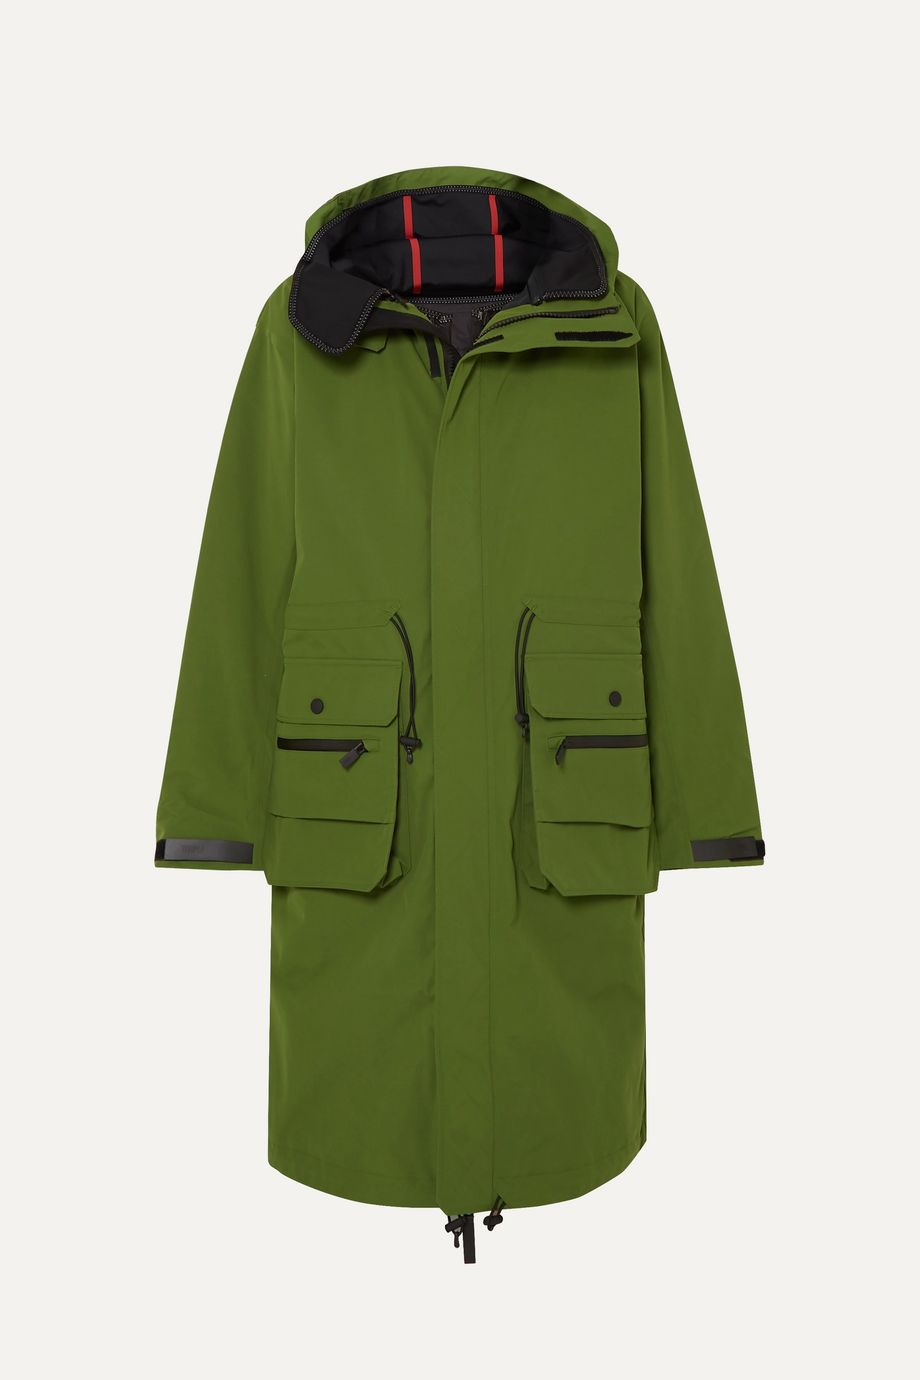 TEMPLA 2L Bio Moss hooded padded canvas parka